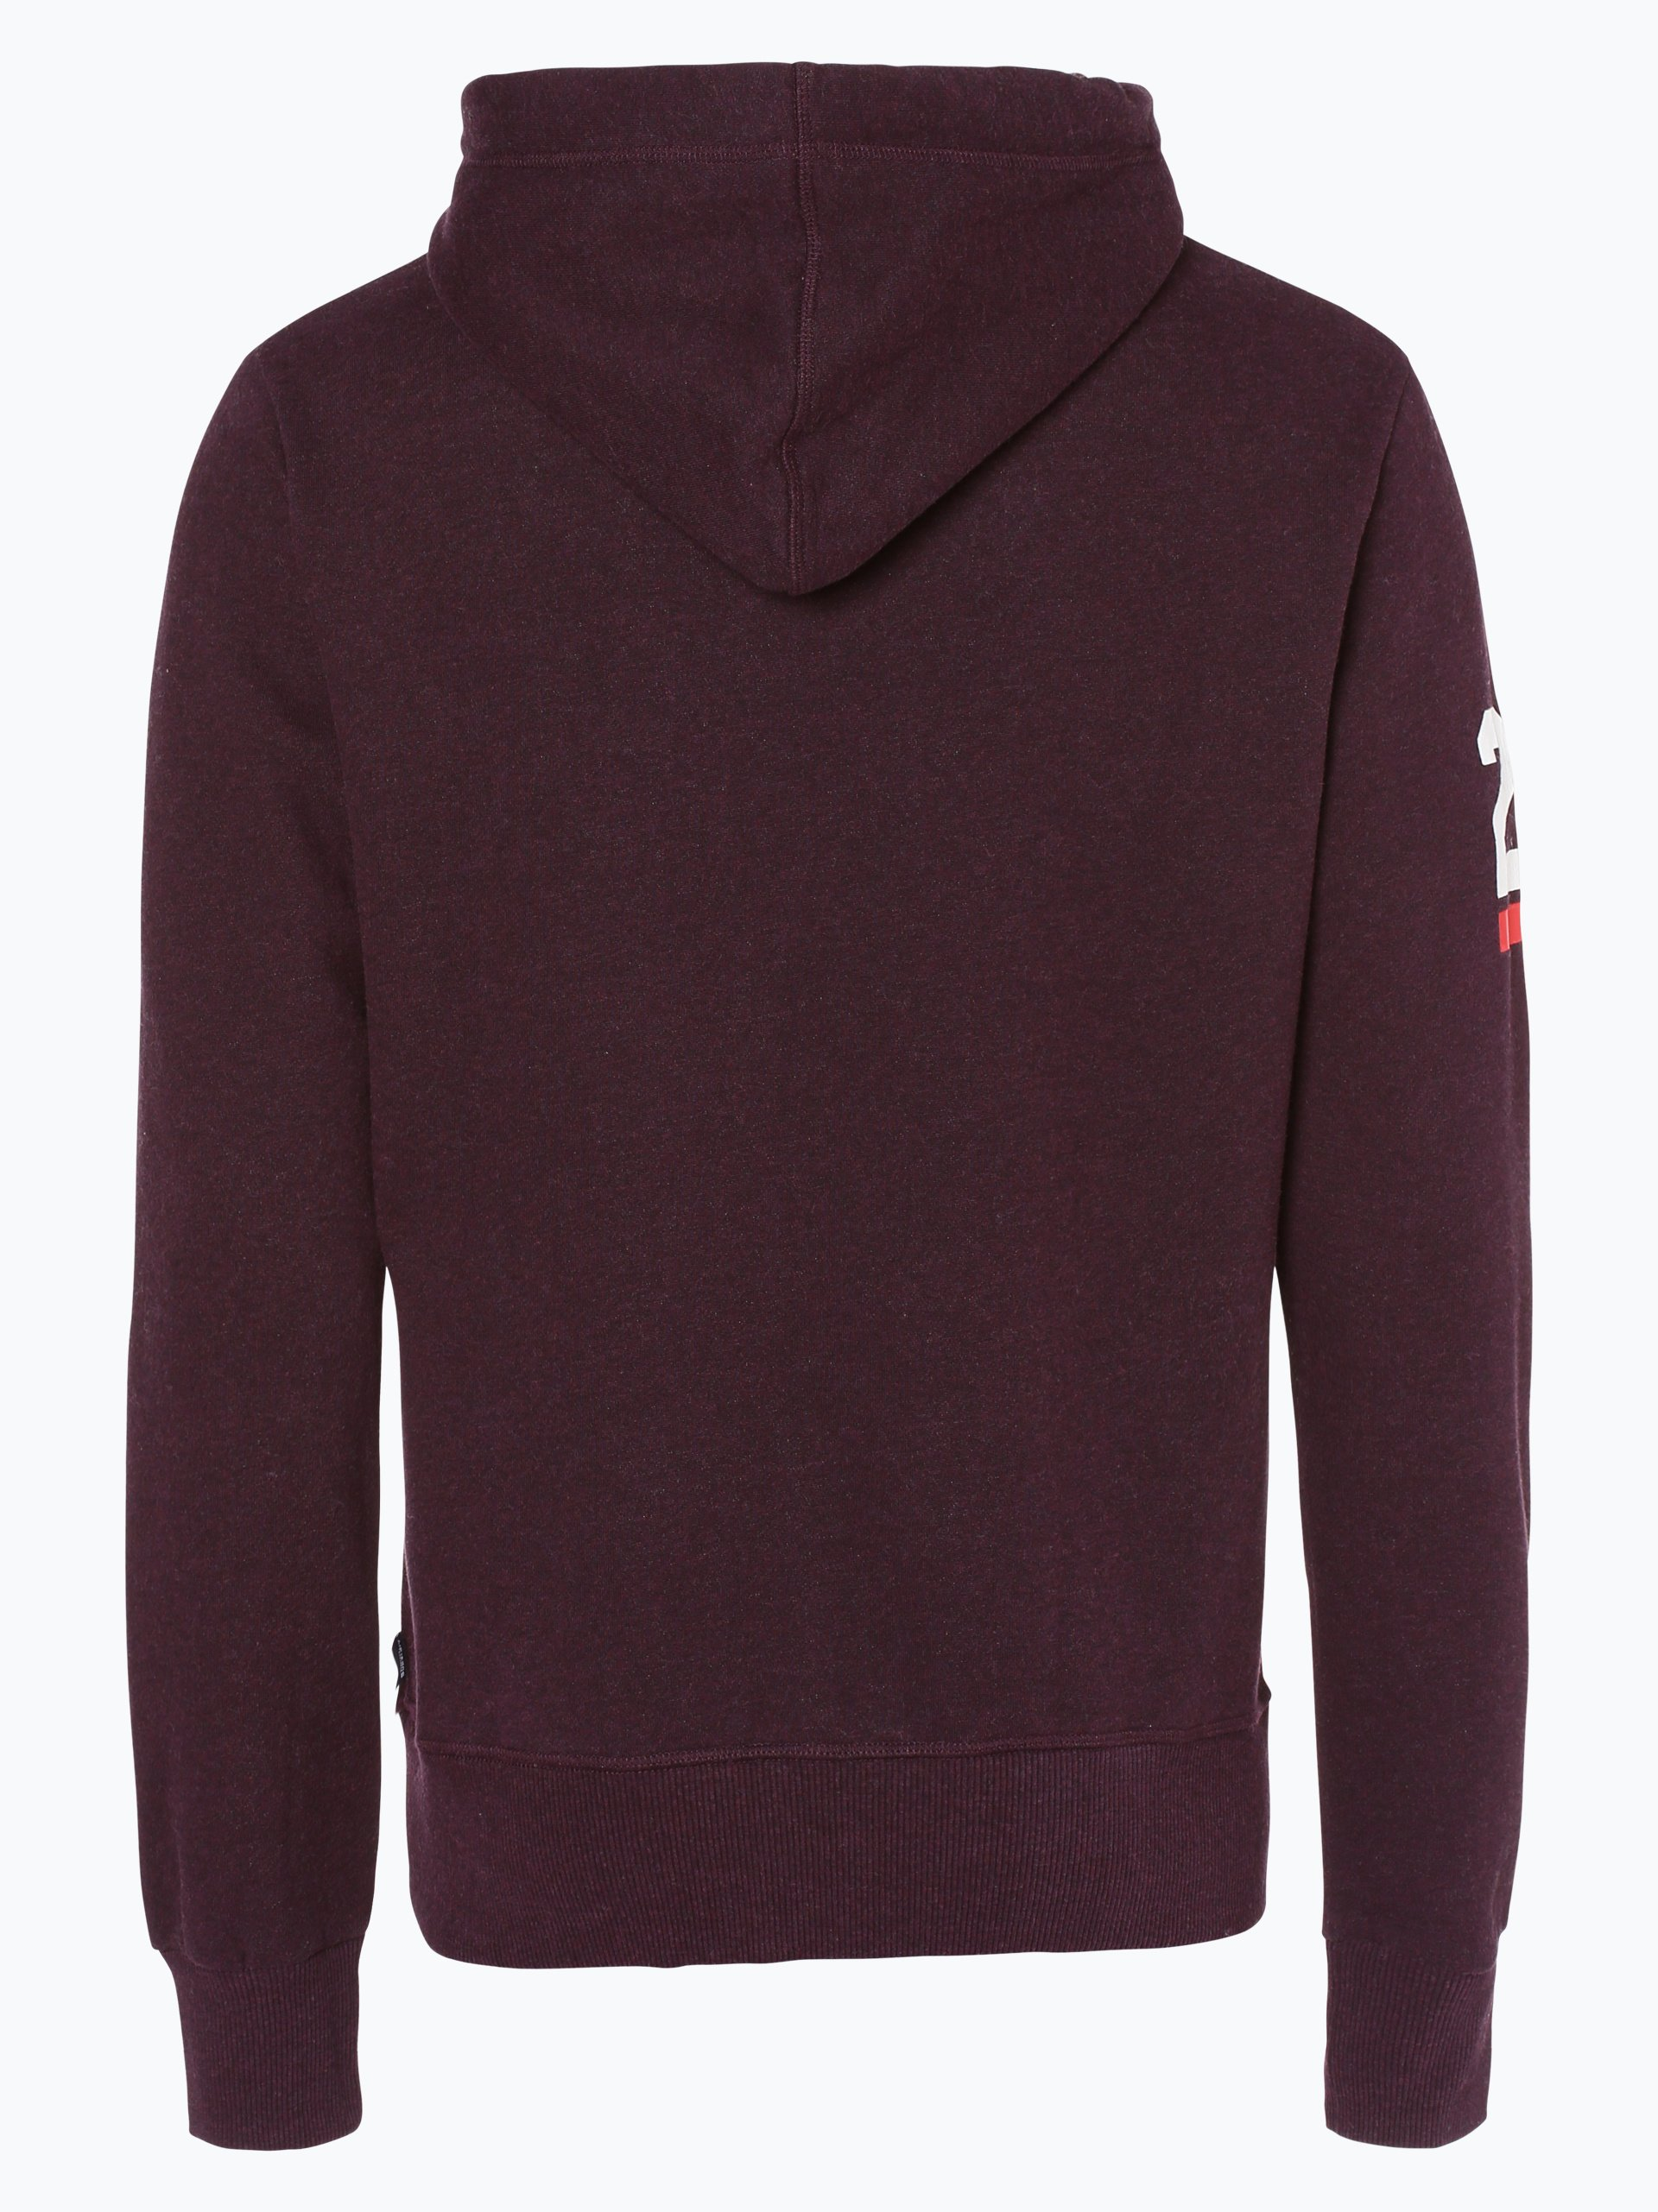 superdry herren sweatshirt aubergine gemustert online. Black Bedroom Furniture Sets. Home Design Ideas